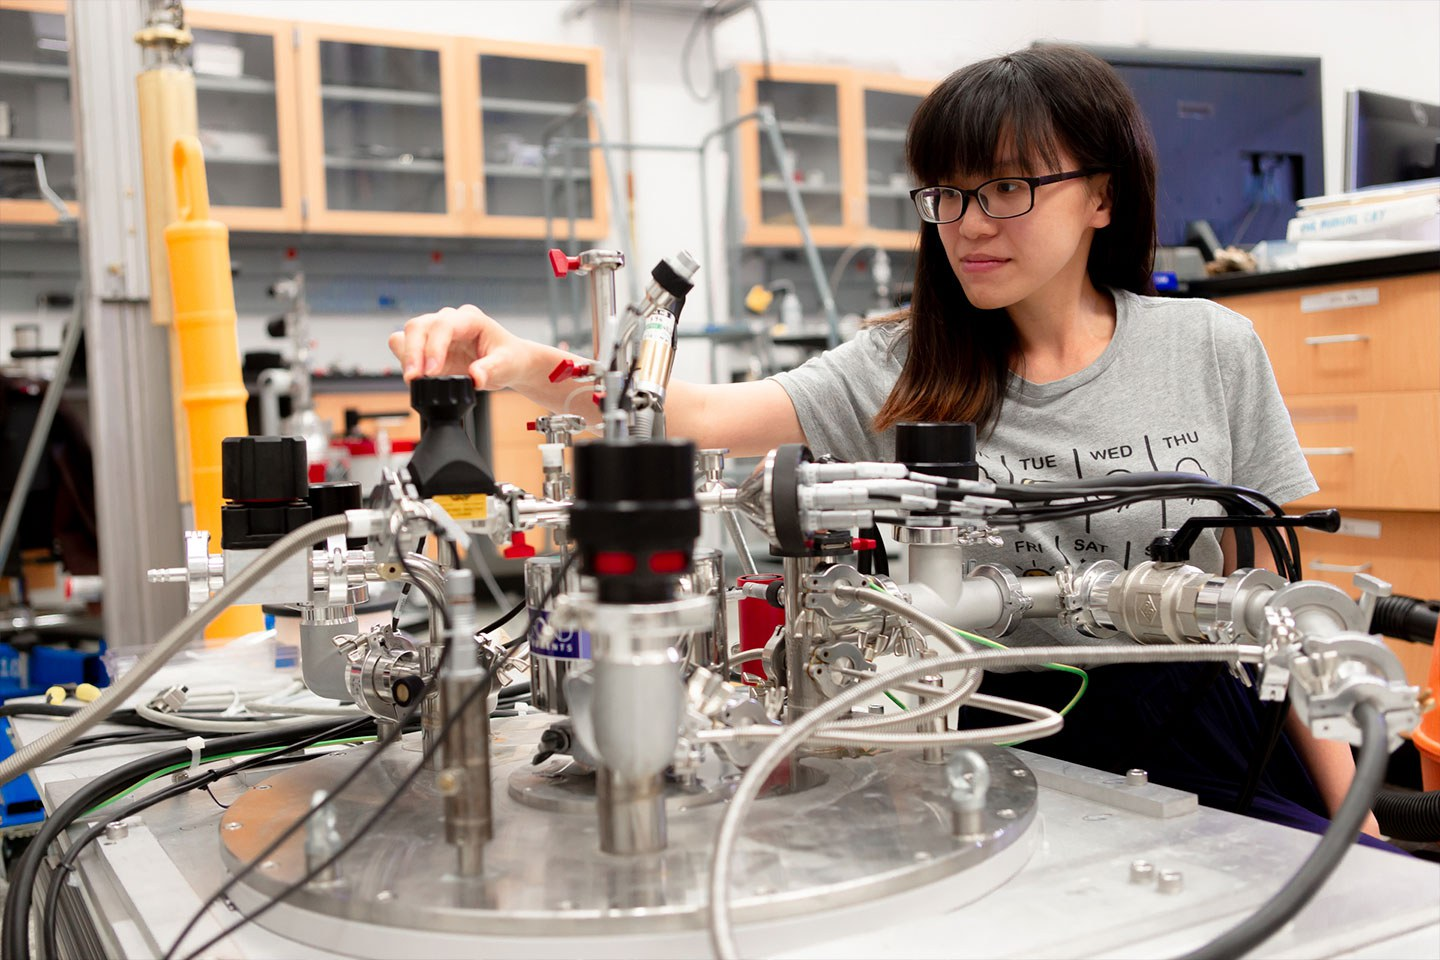 Individual standing behind and making adjustments to laboratory equipment